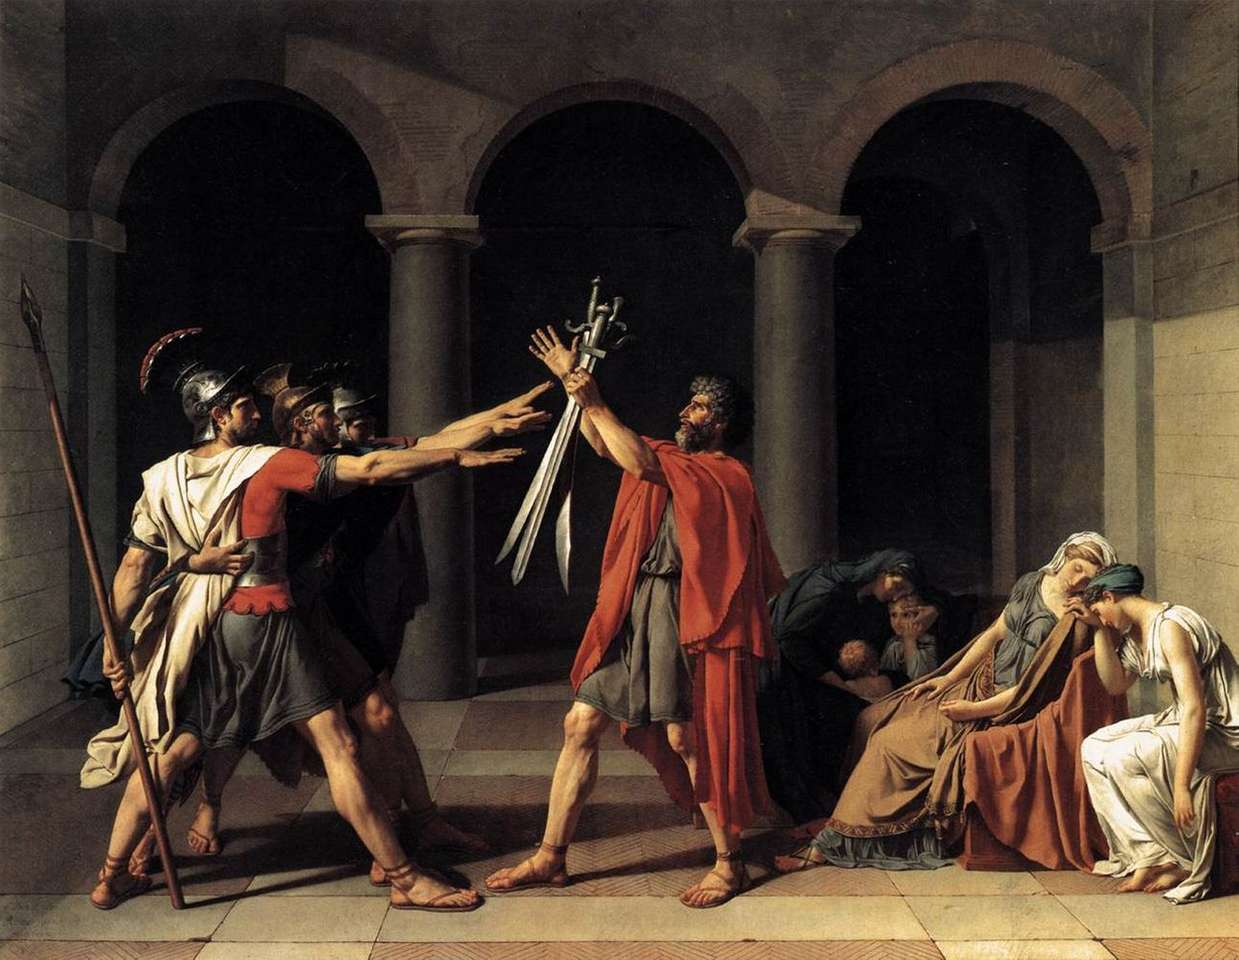 The Oath of Horace - artist Jacques-Louis David (10×8)